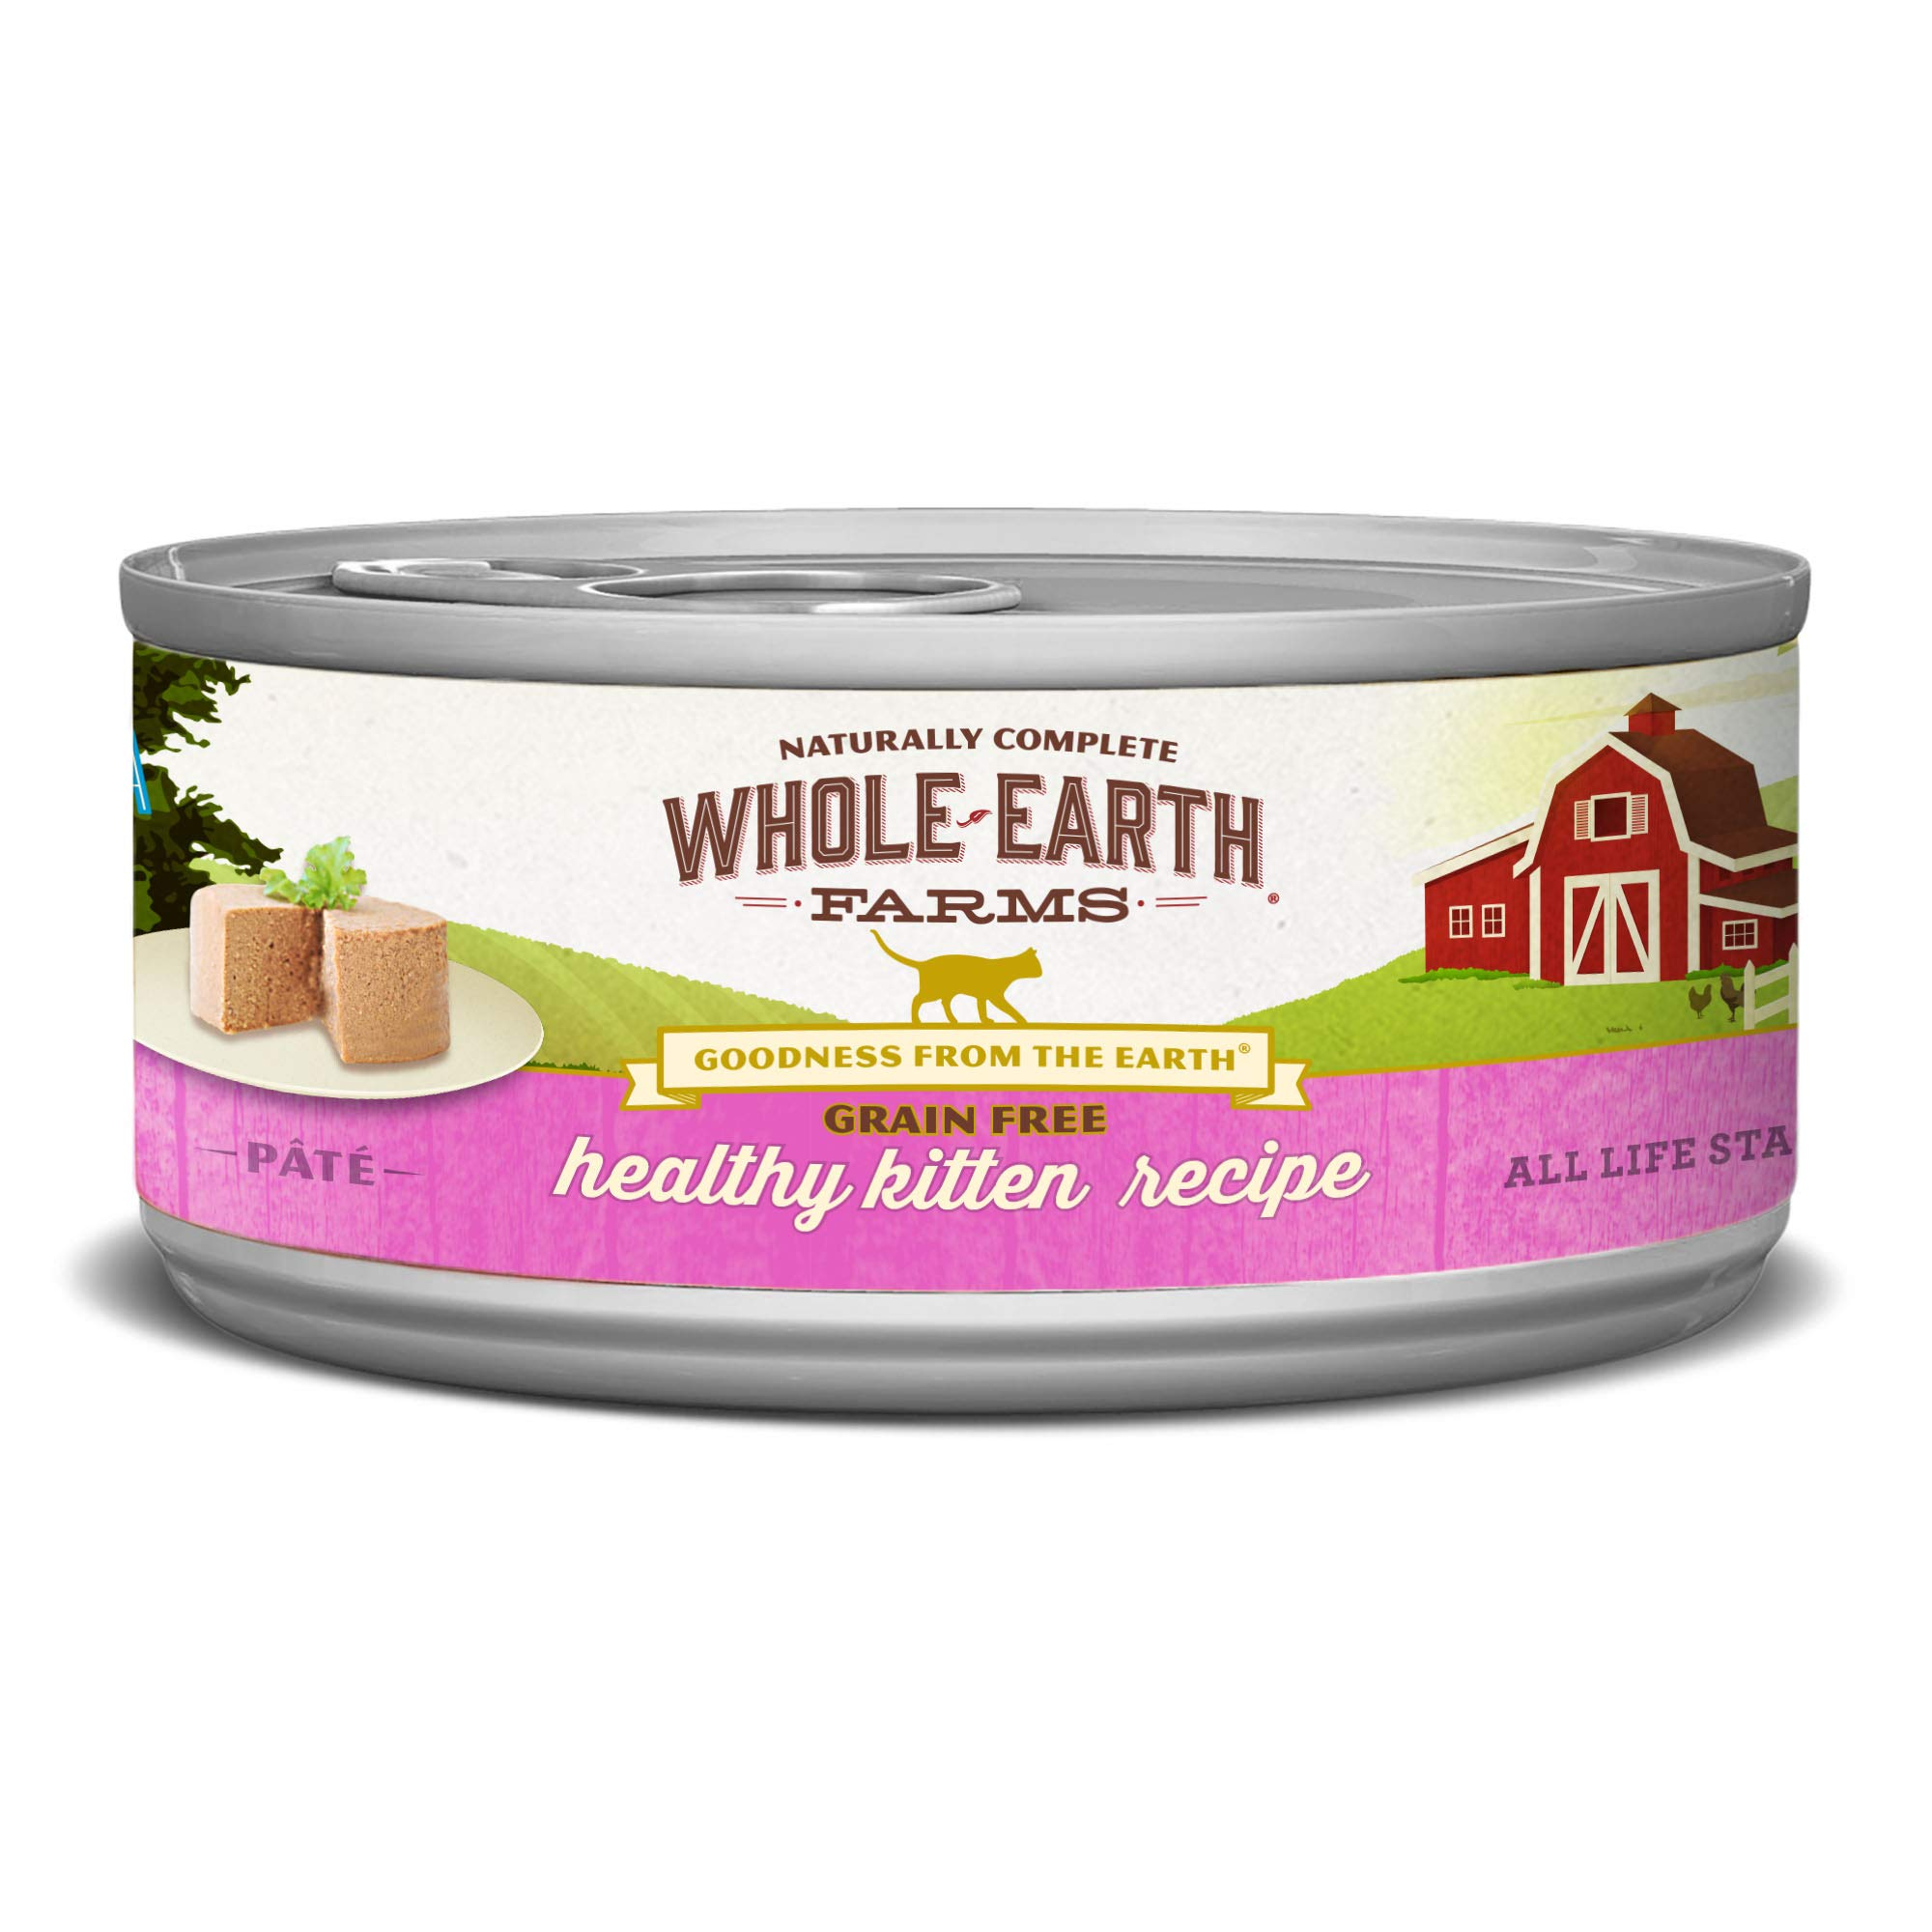 Whole Earth Farms 24 Case Grain Free Real Healthy Kitten Recipe, 2.75 Oz by Whole Earth Farms